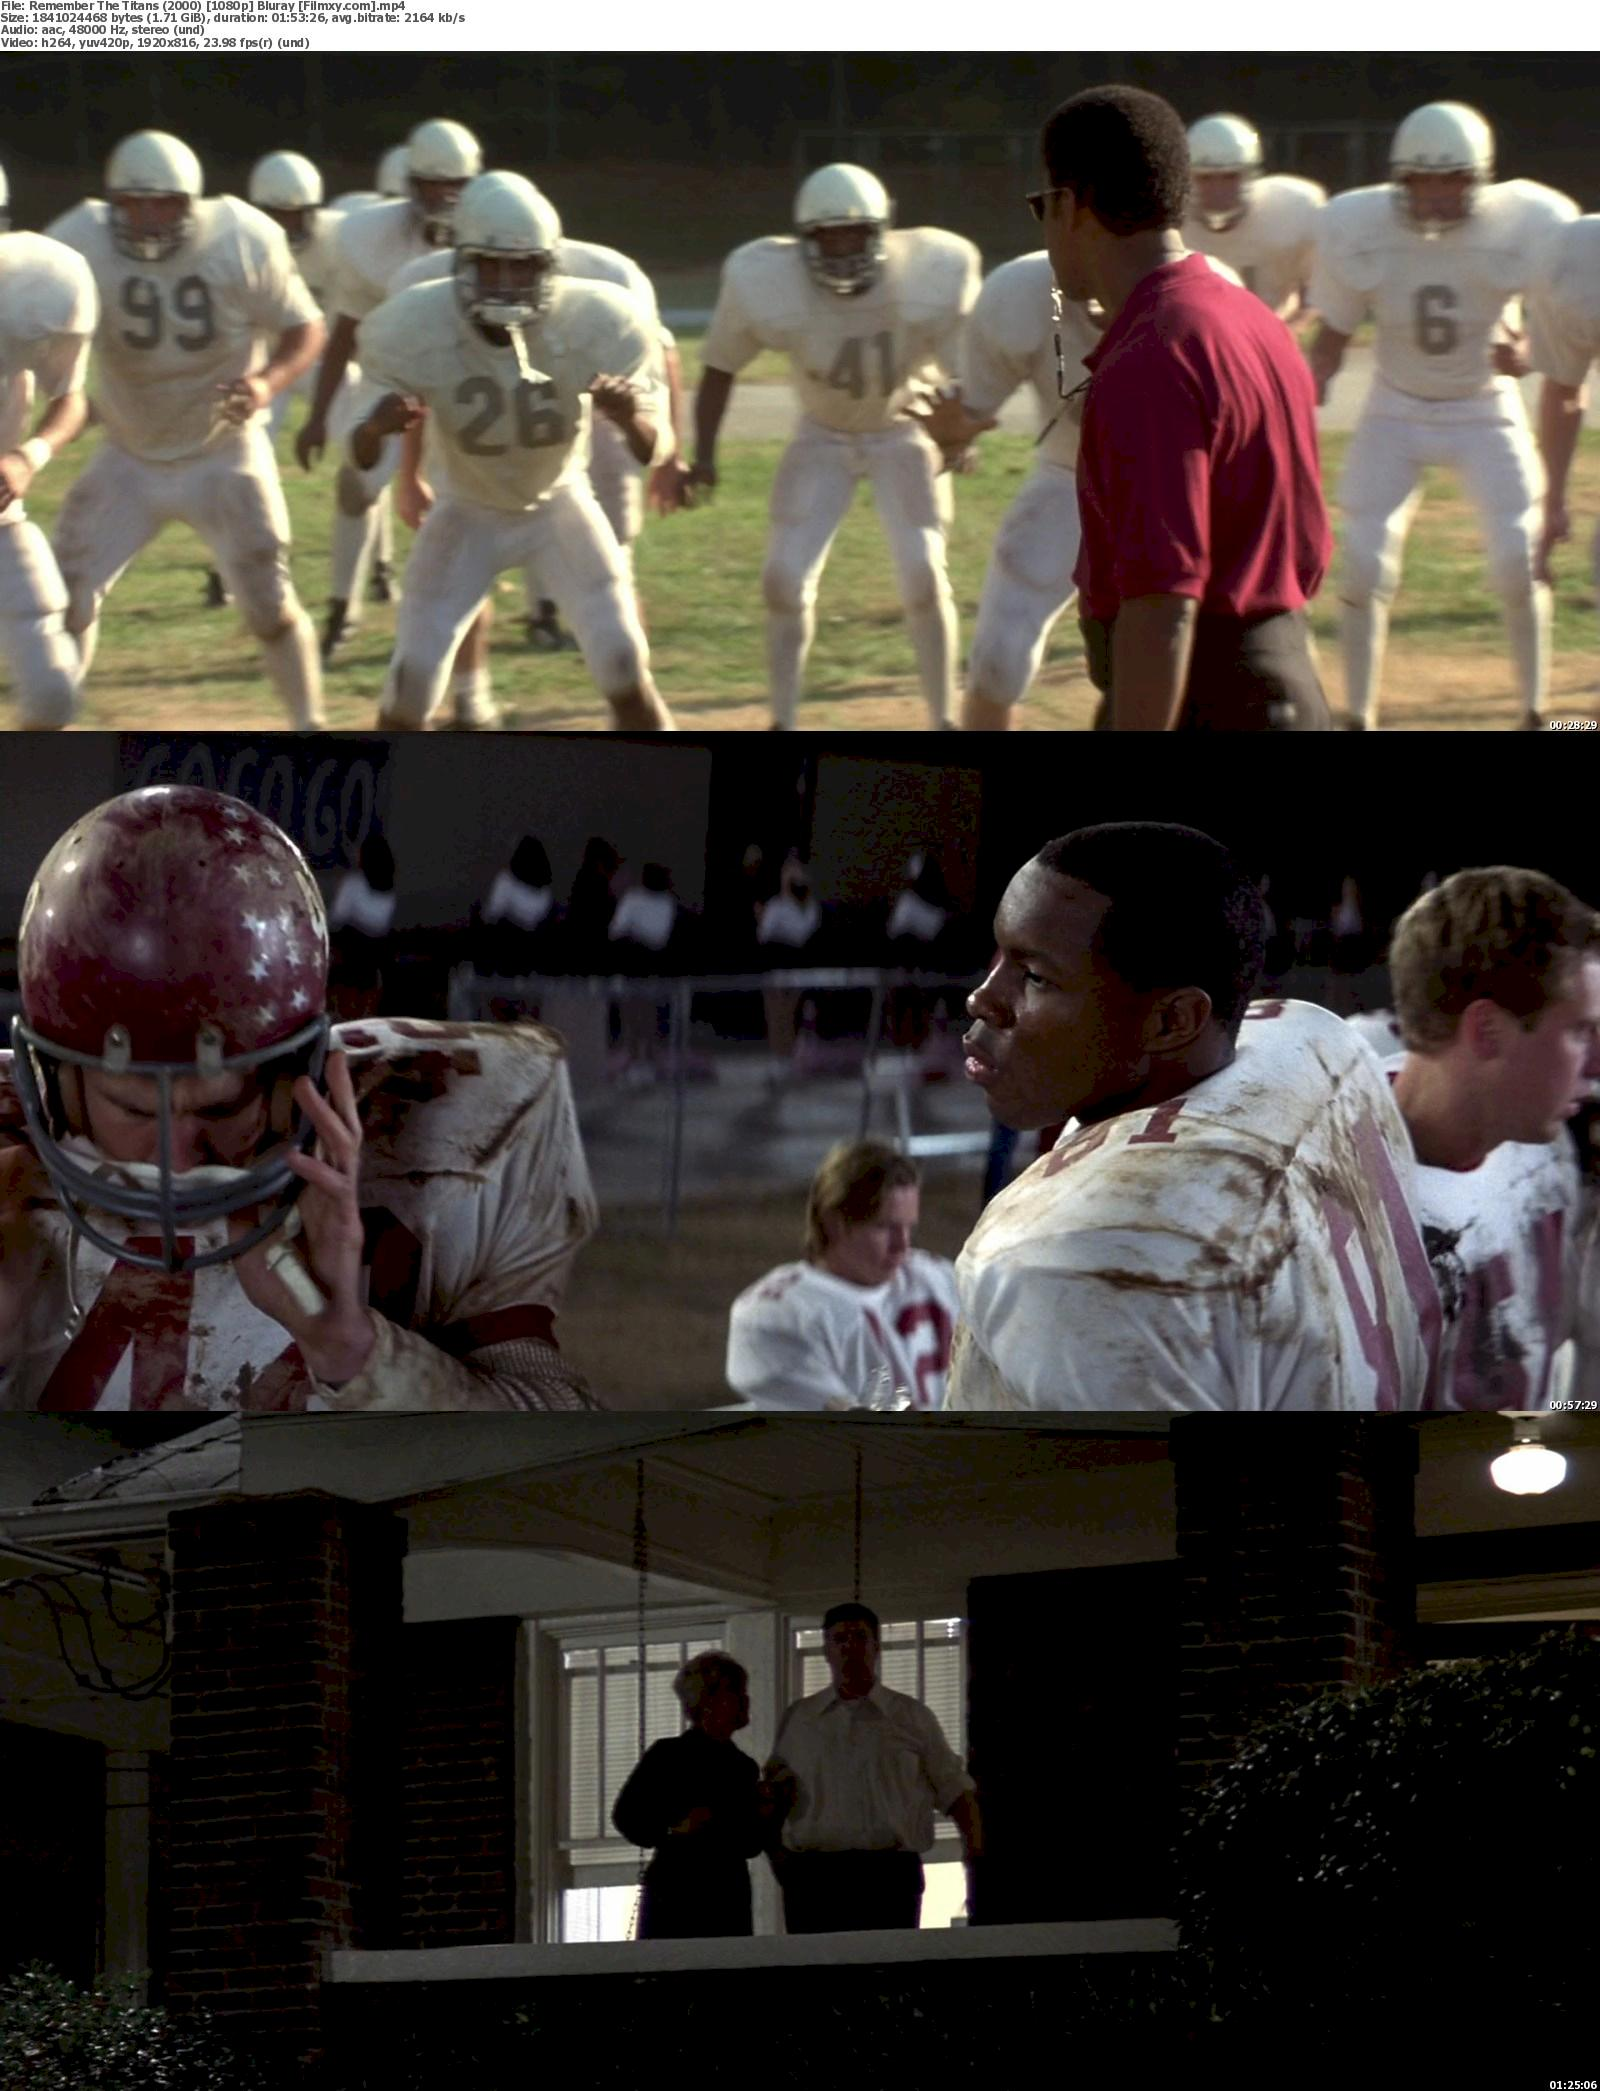 Remember the Titans (2000) 720p&1080p Bluray Free Download 1080p Screenshot